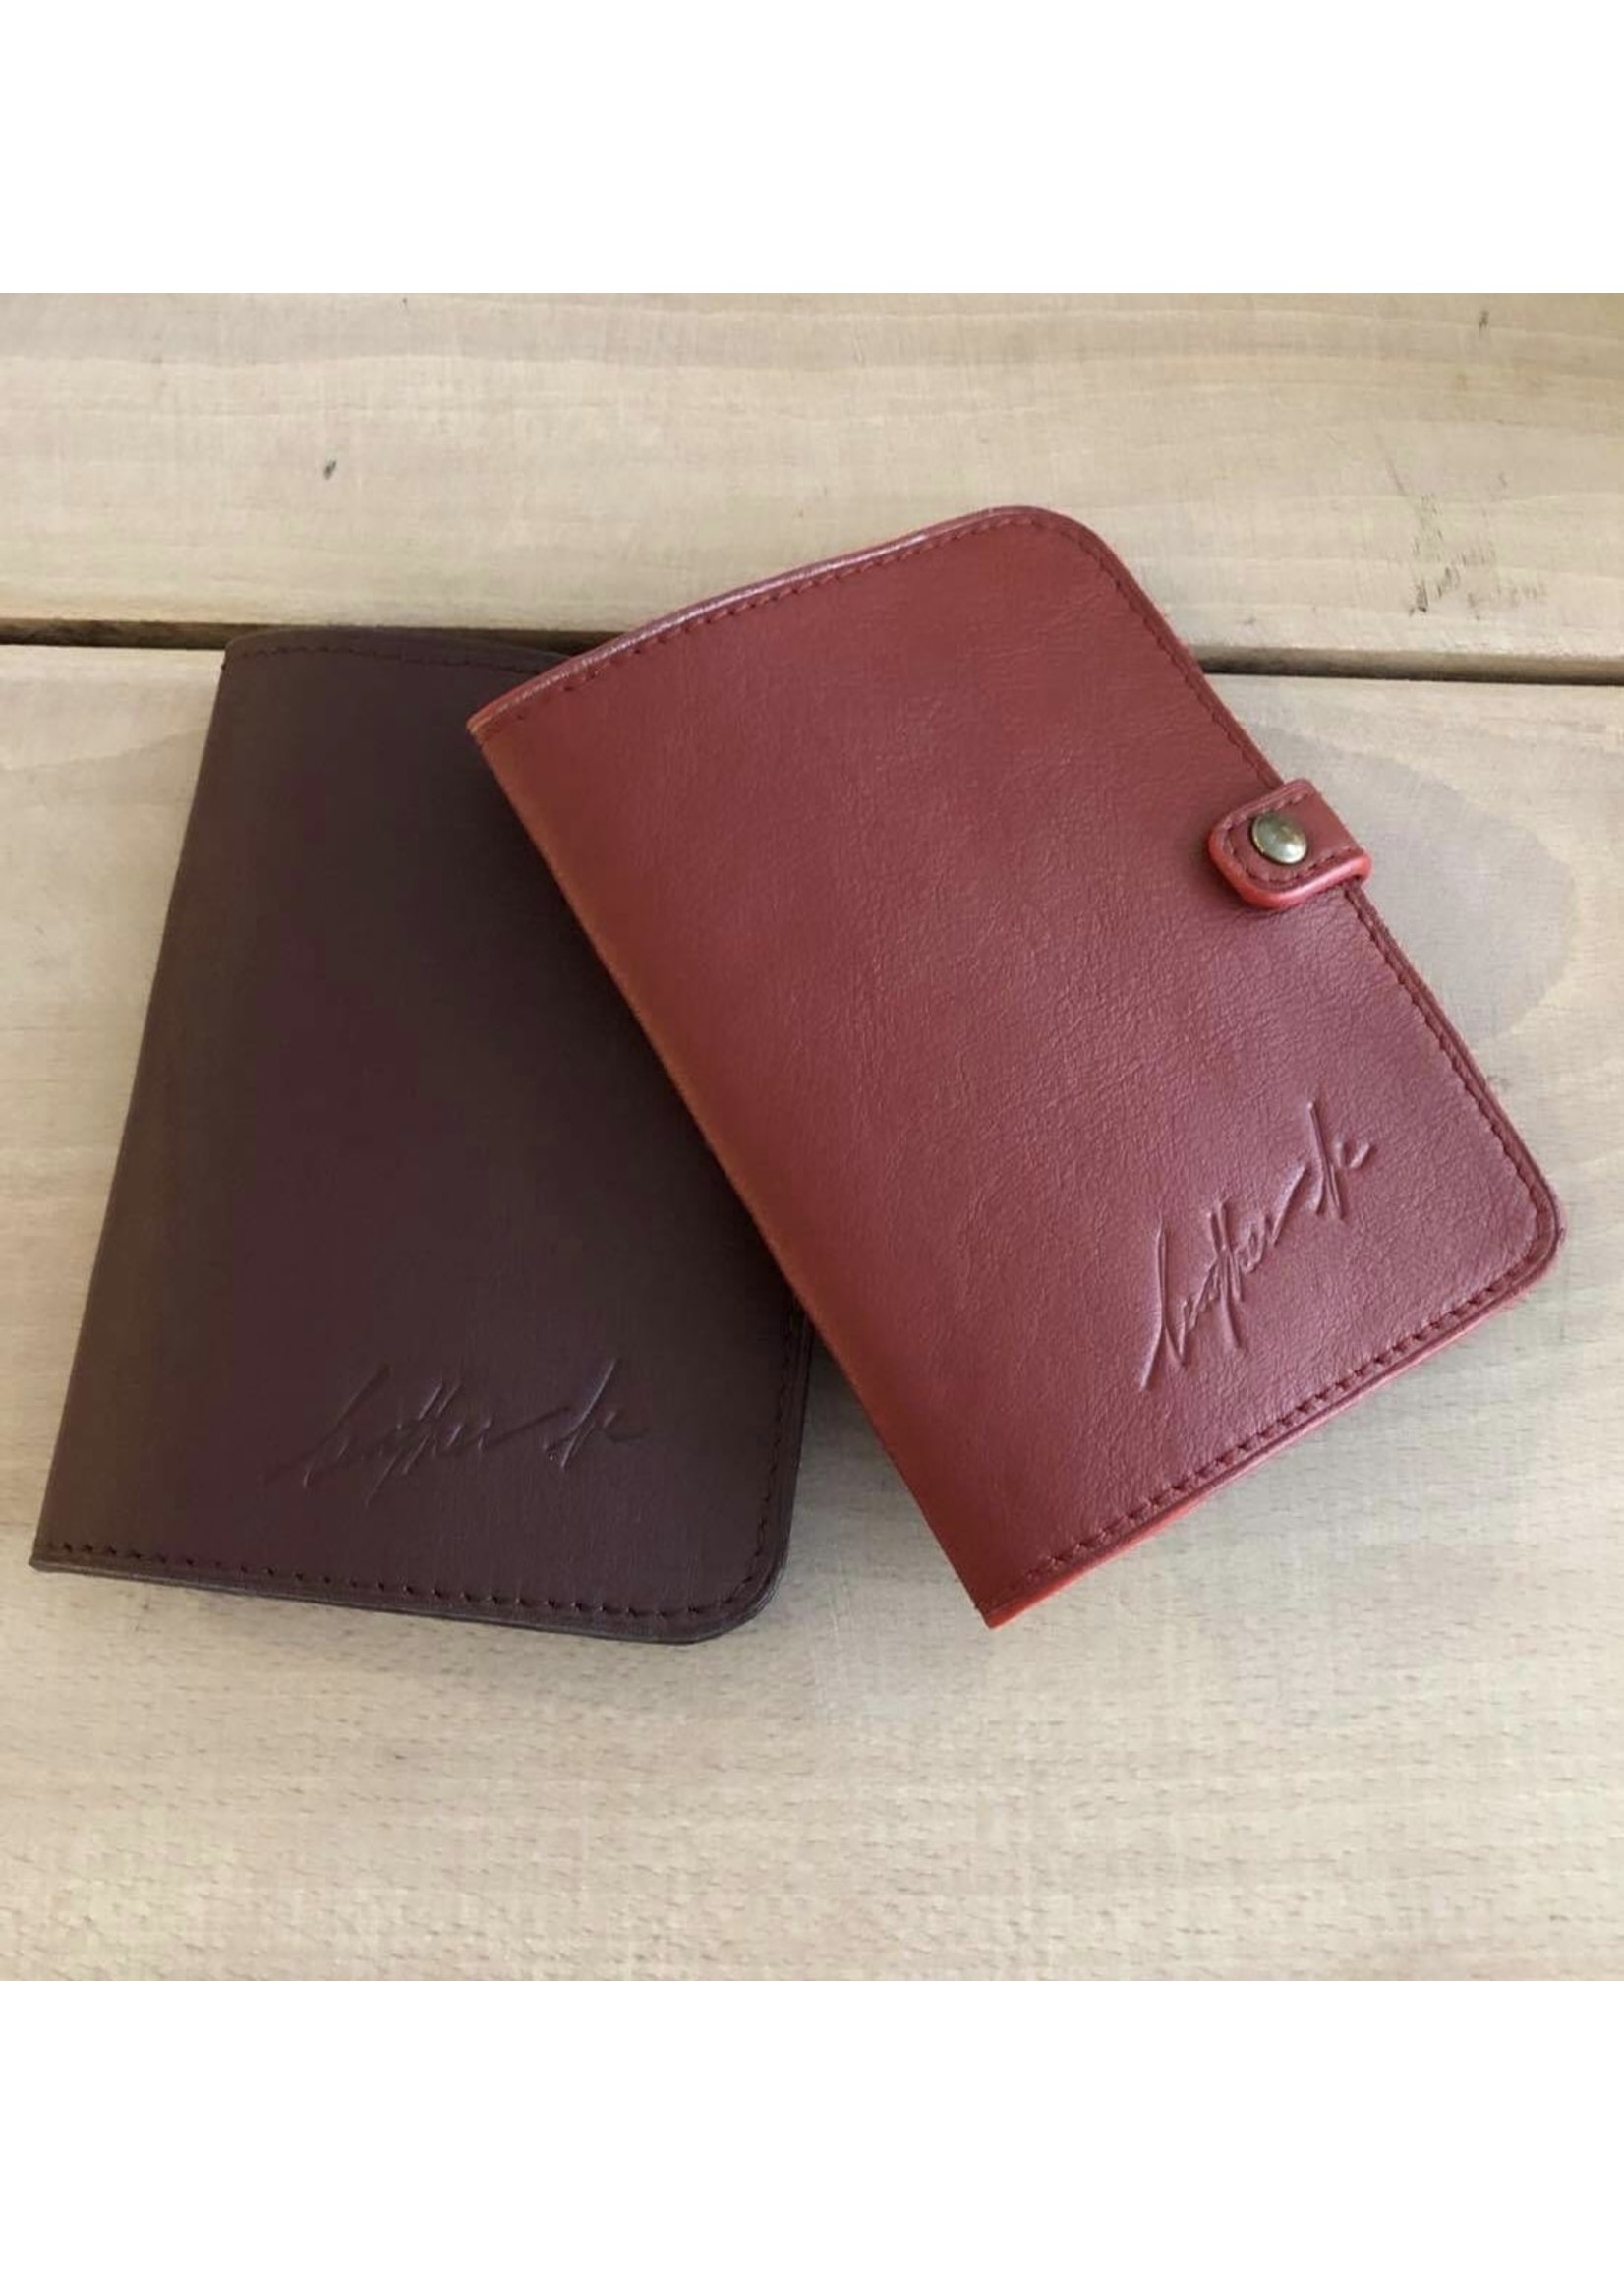 Leather Be Mondmasker etui